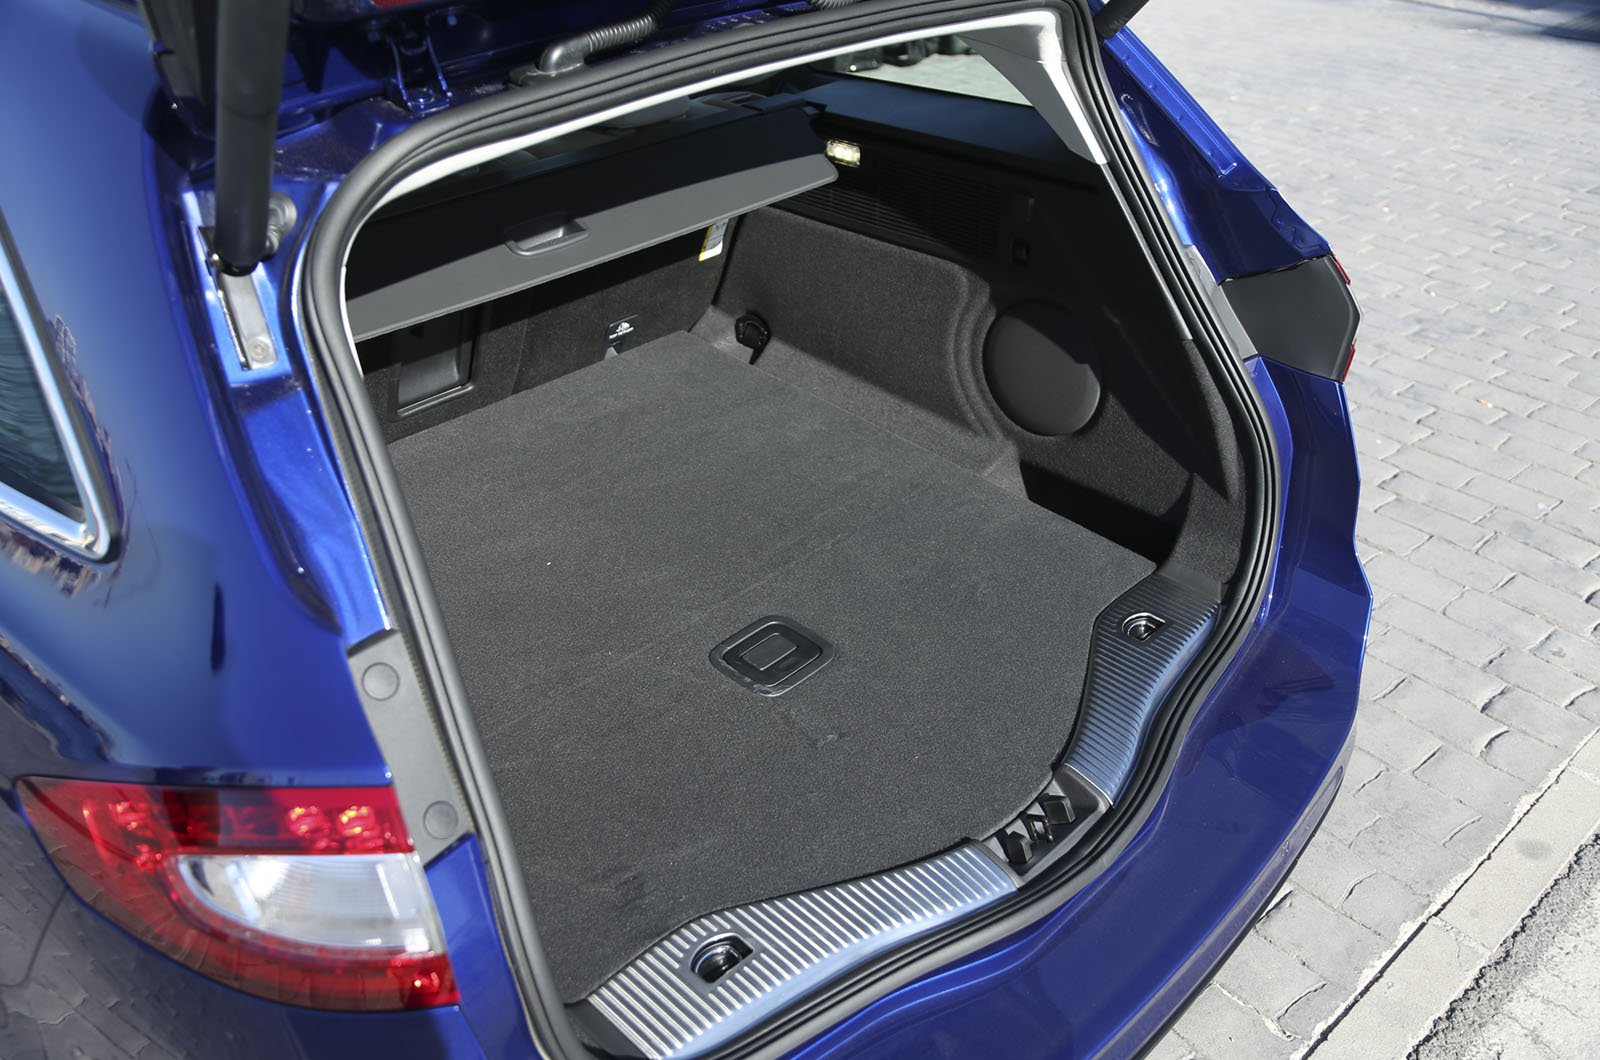 The Mondeo Offers 755 Litres Of Boot Space With The Rear